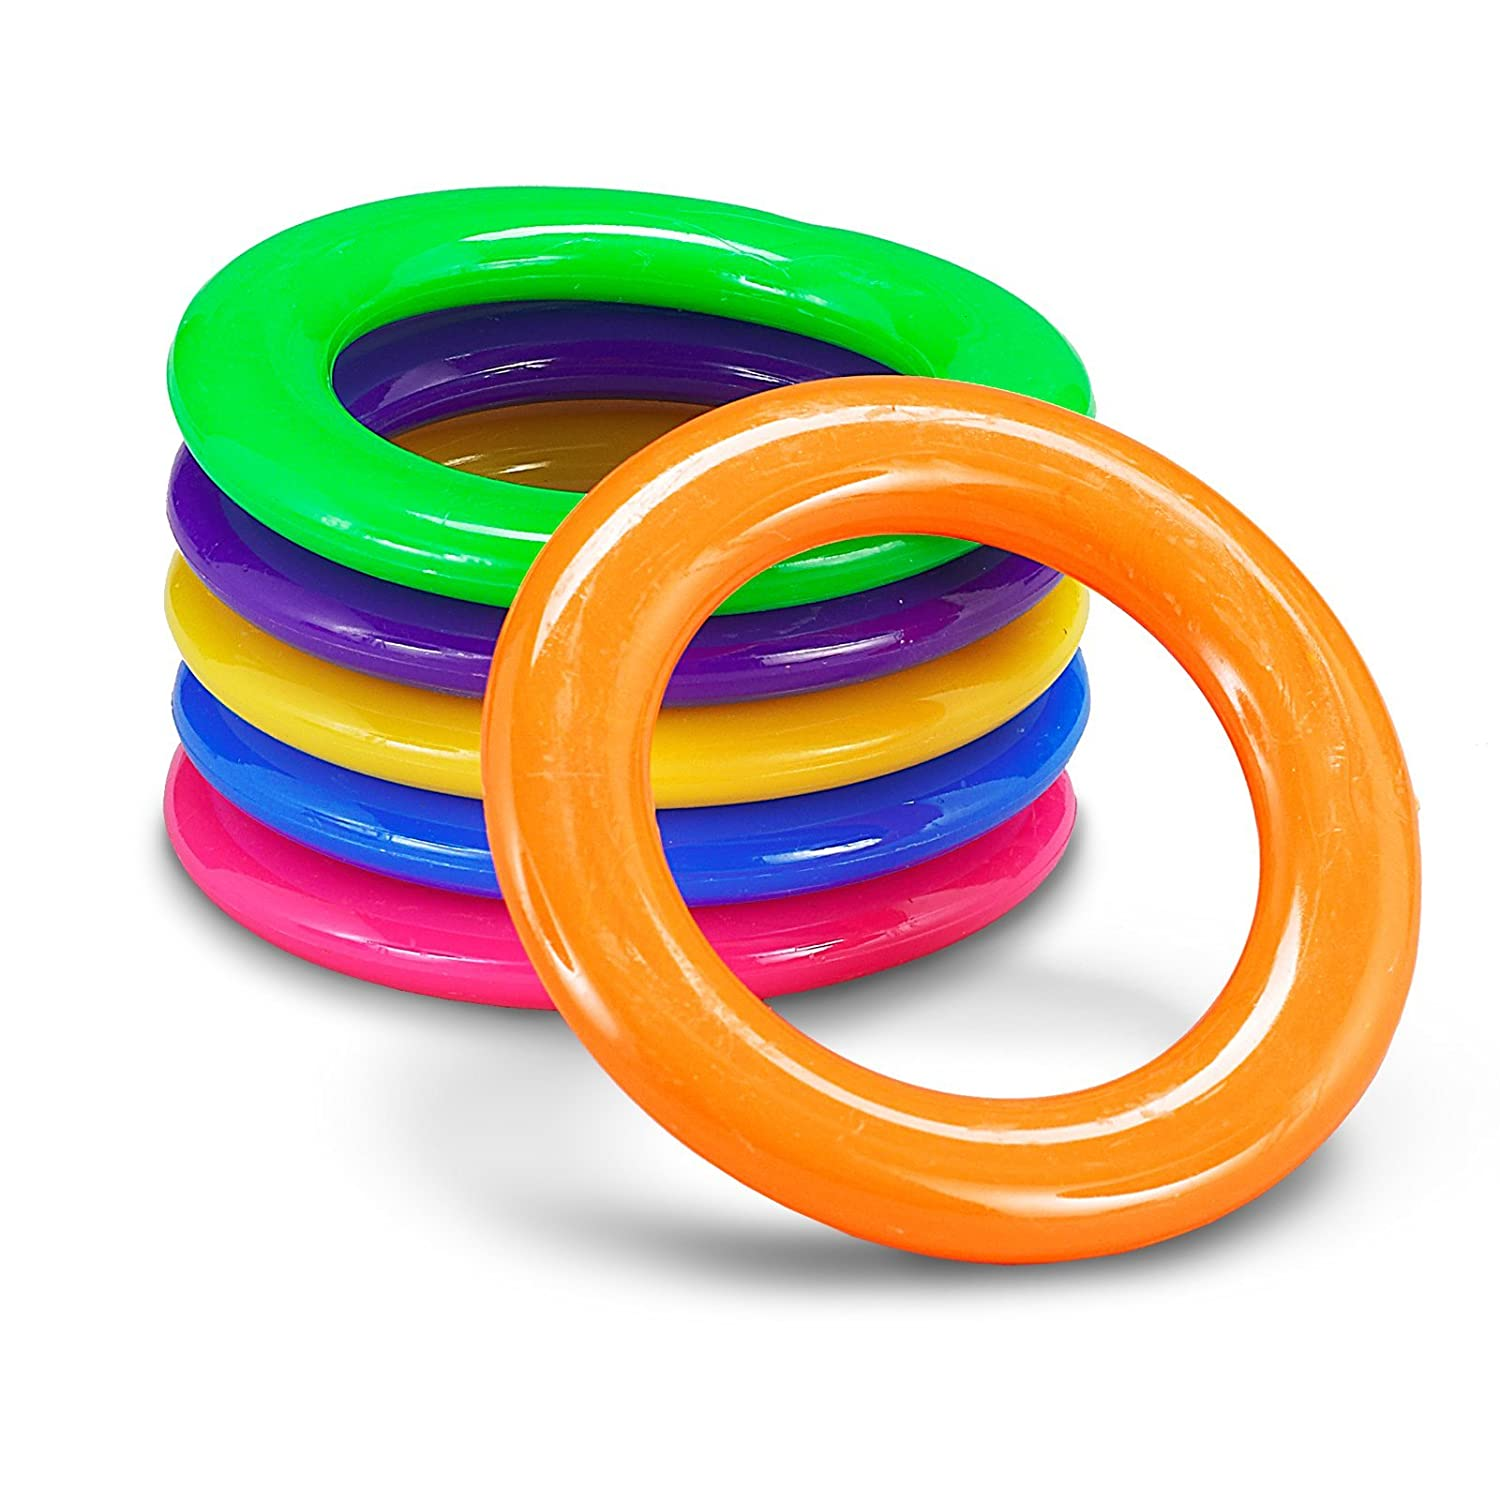 beautyinustores two products rings hole plastic